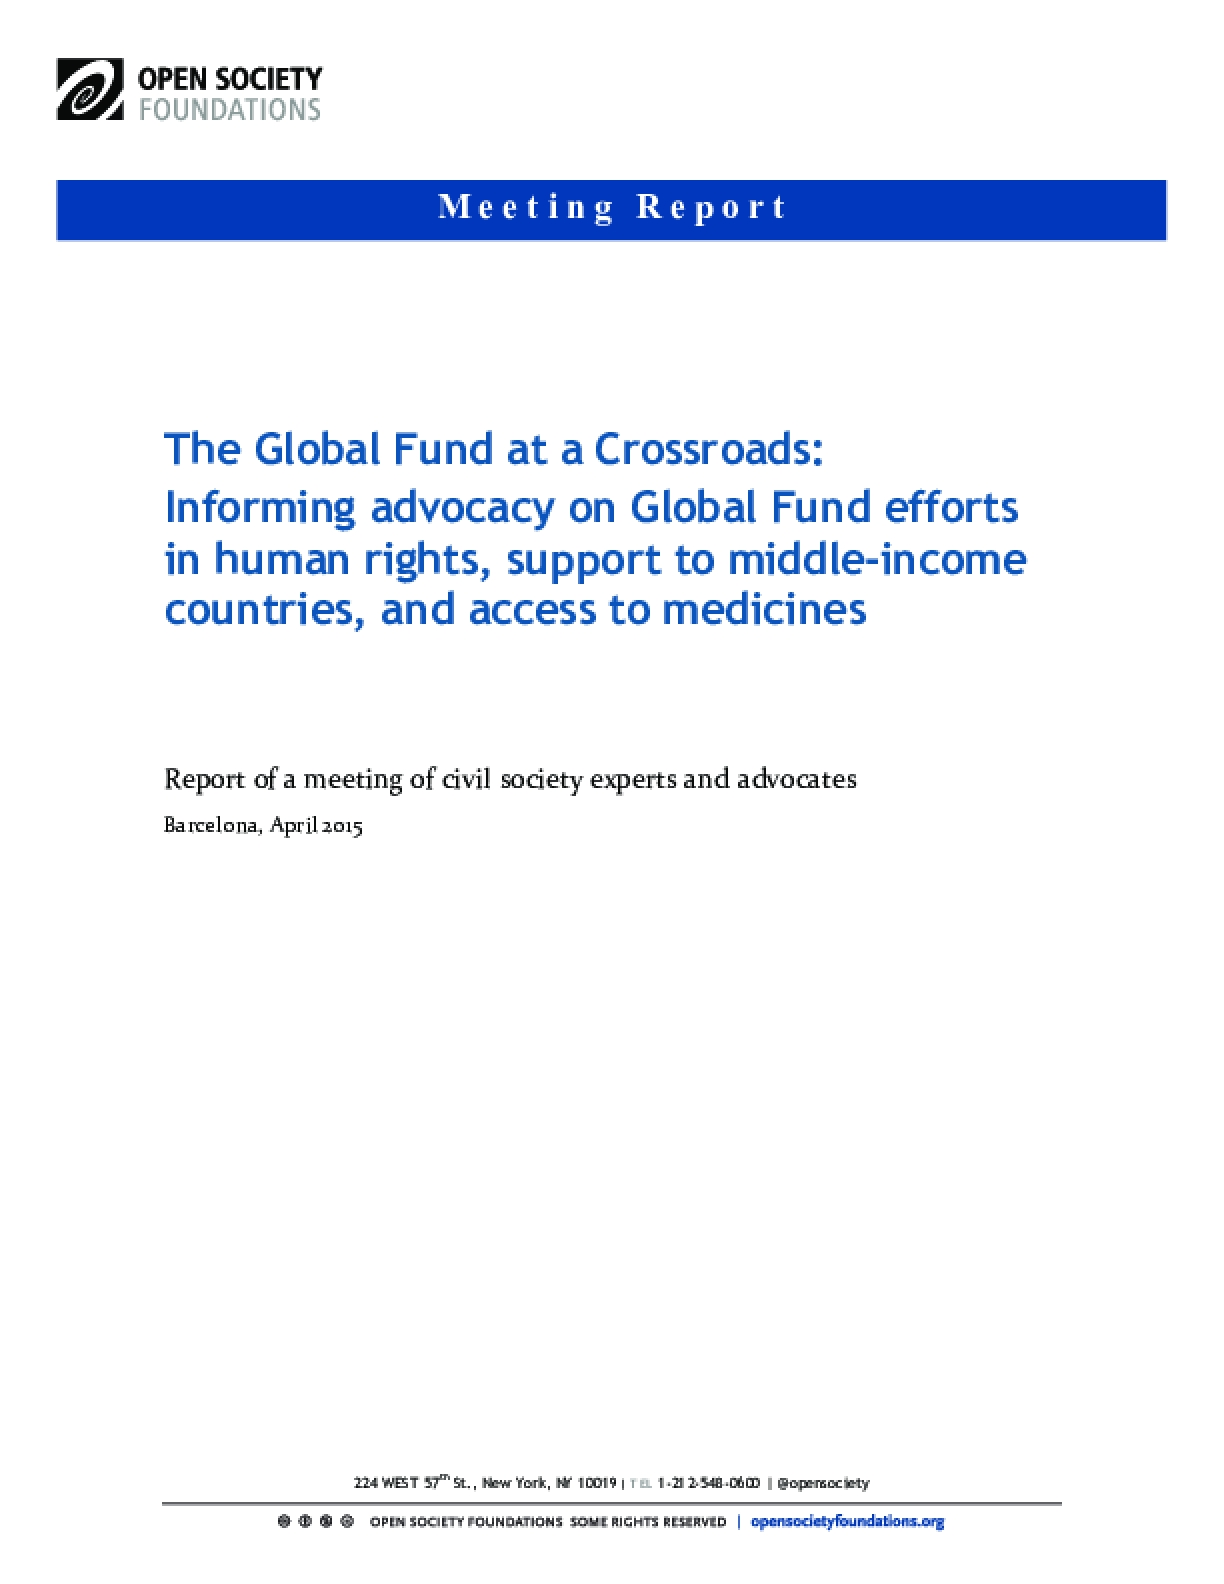 The Global Fund at a Crossroads: Informing Advocacy on Global Fund Efforts in Human Rights, Support to Middle-income Countries, and Access to Medicines